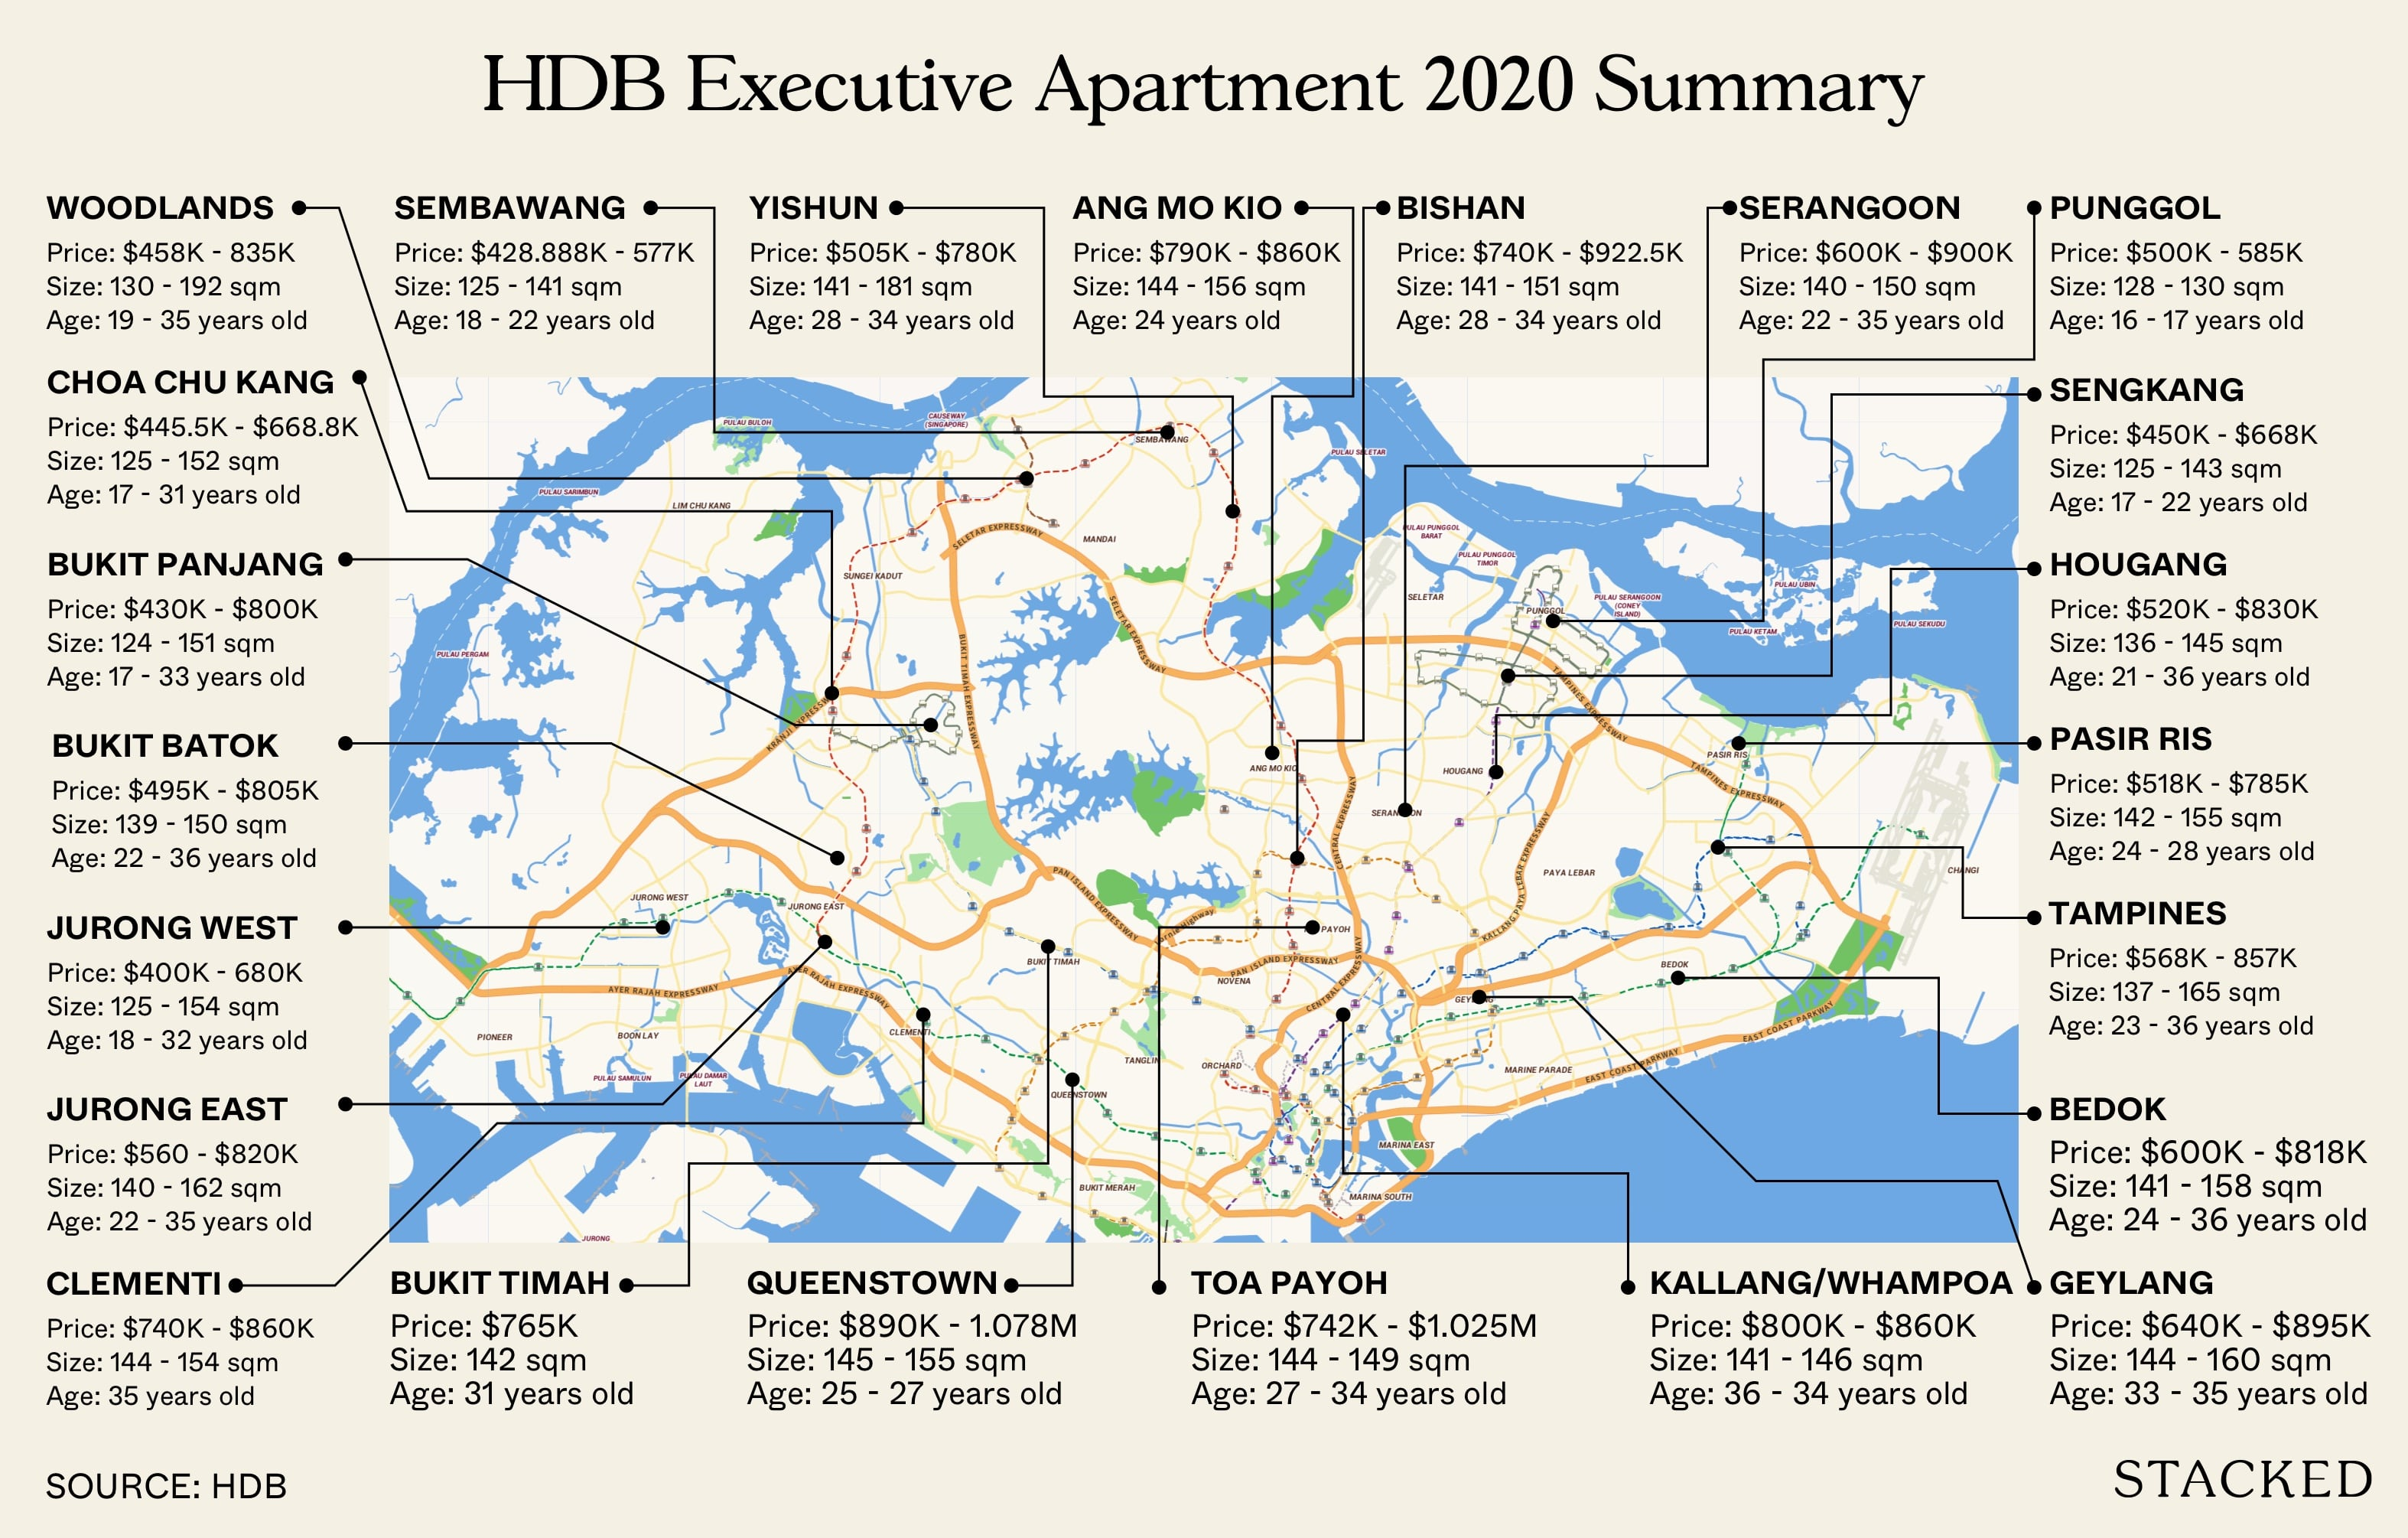 HDB executive apartment locations